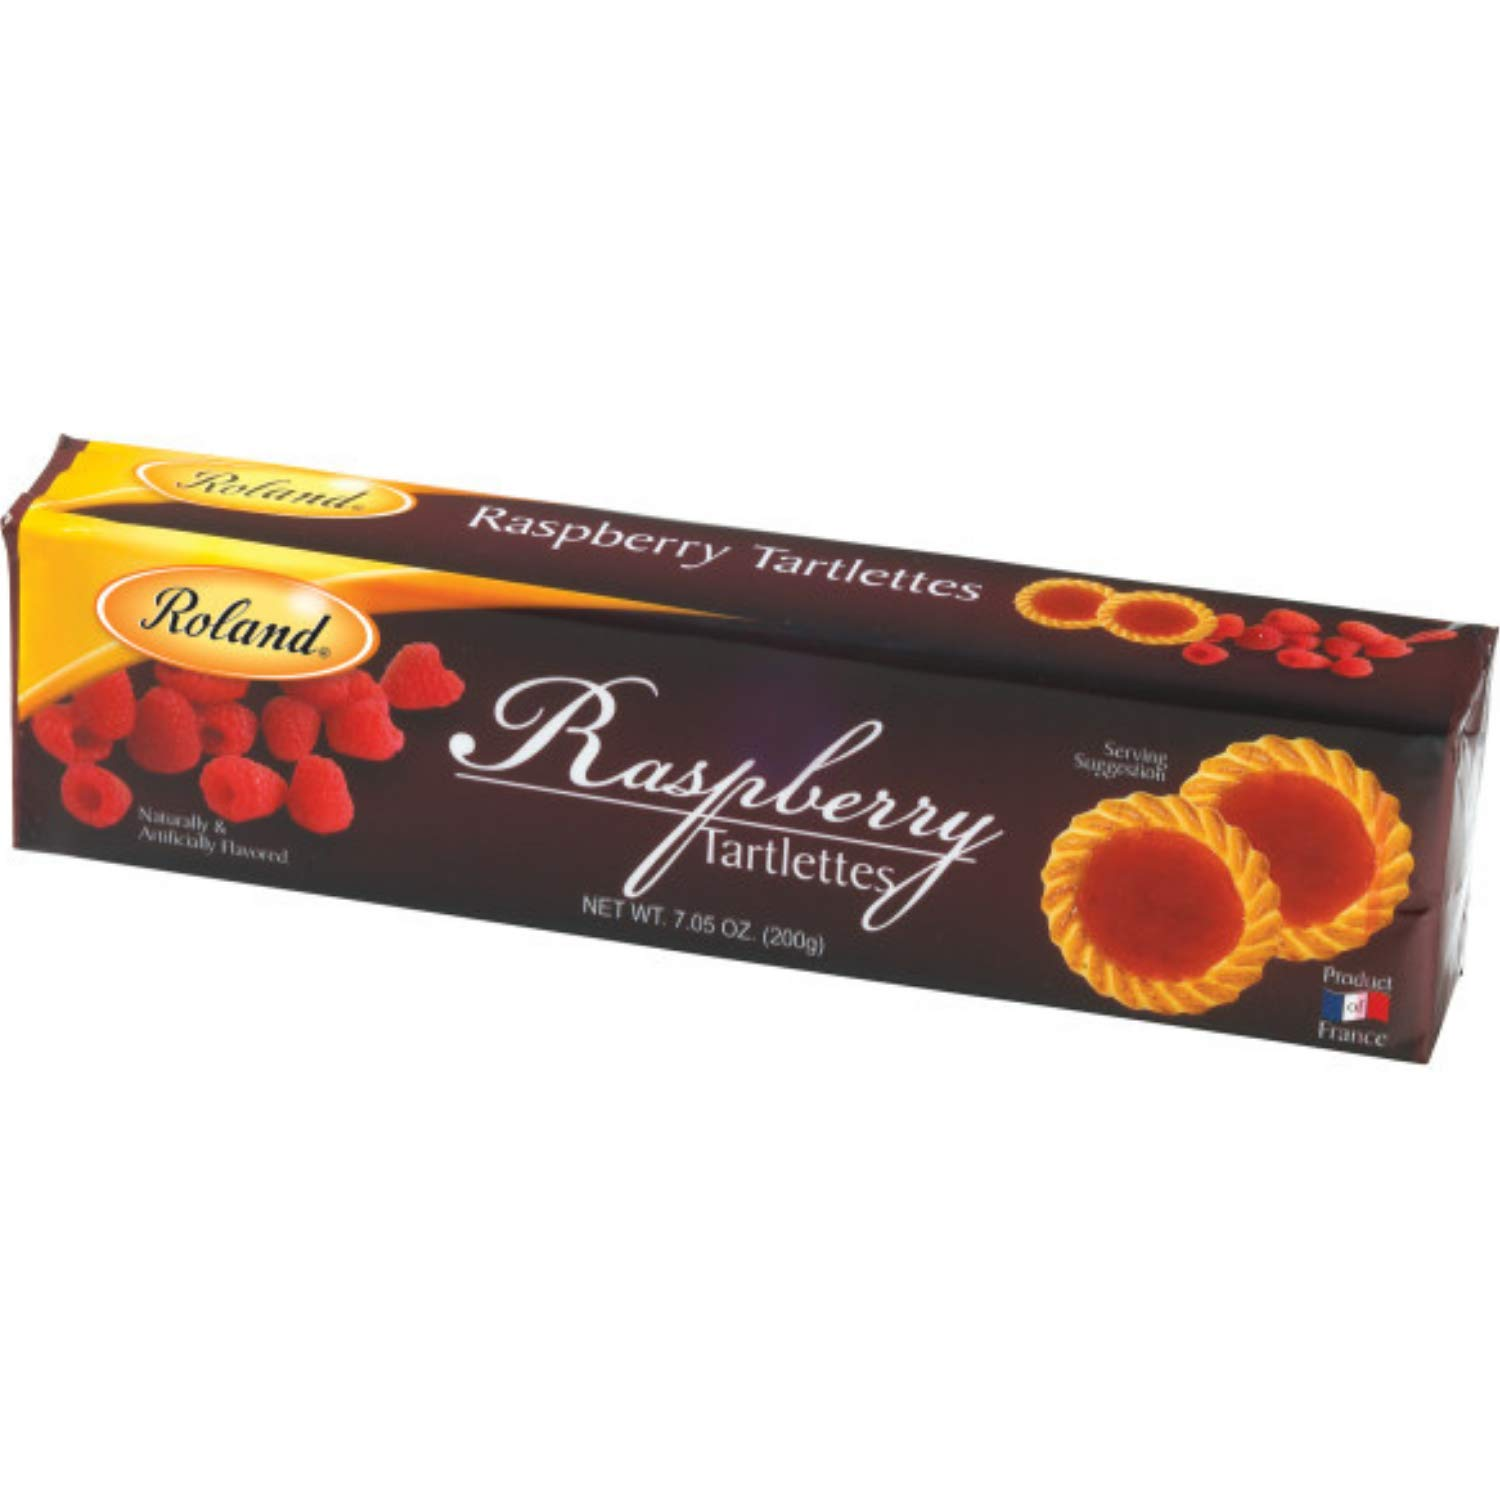 Roland Foods Raspberry Tartlette Cookies, Specialty Imported Food, 7.05-Ounce Box